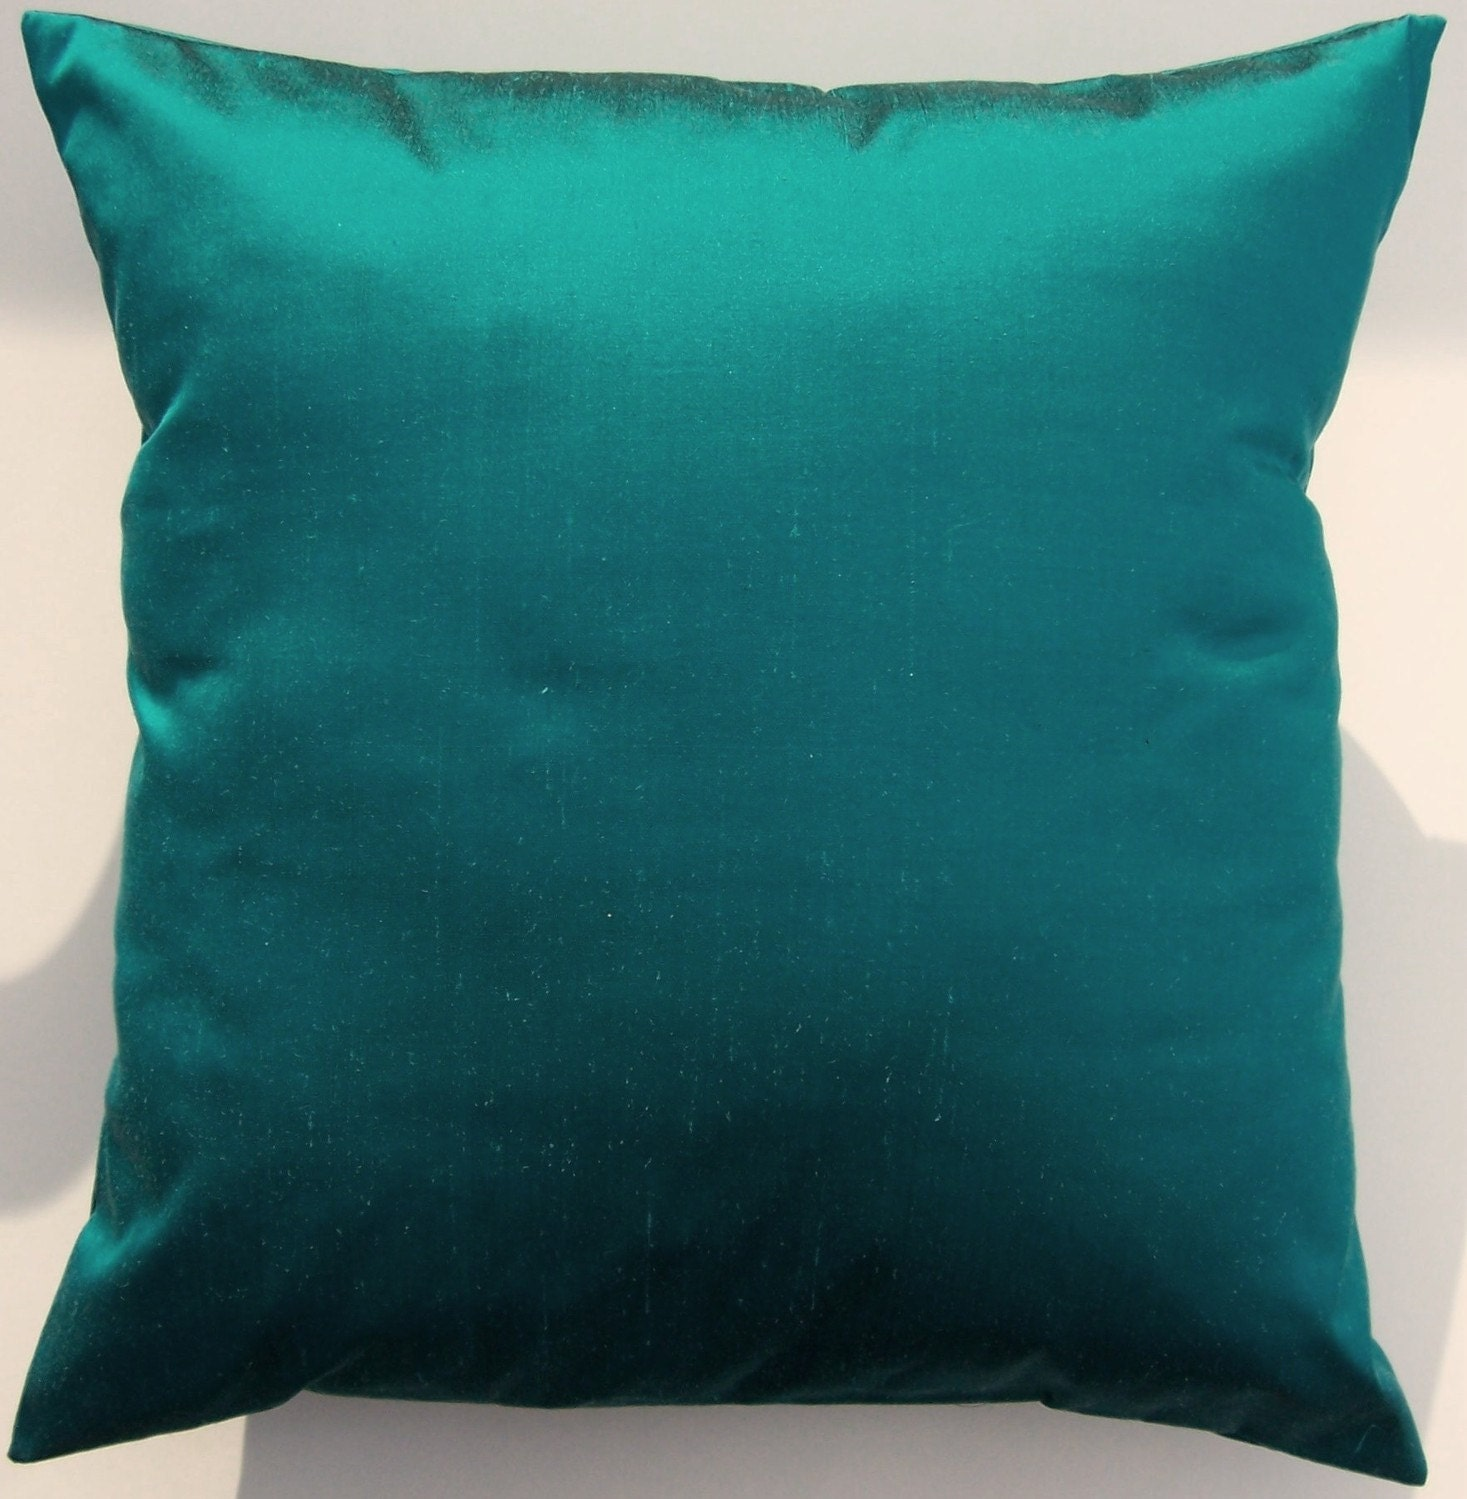 Etsy Teal Throw Pillow : Teal Throw Pillow Cover Simply Silk Teal by sassypillows on Etsy